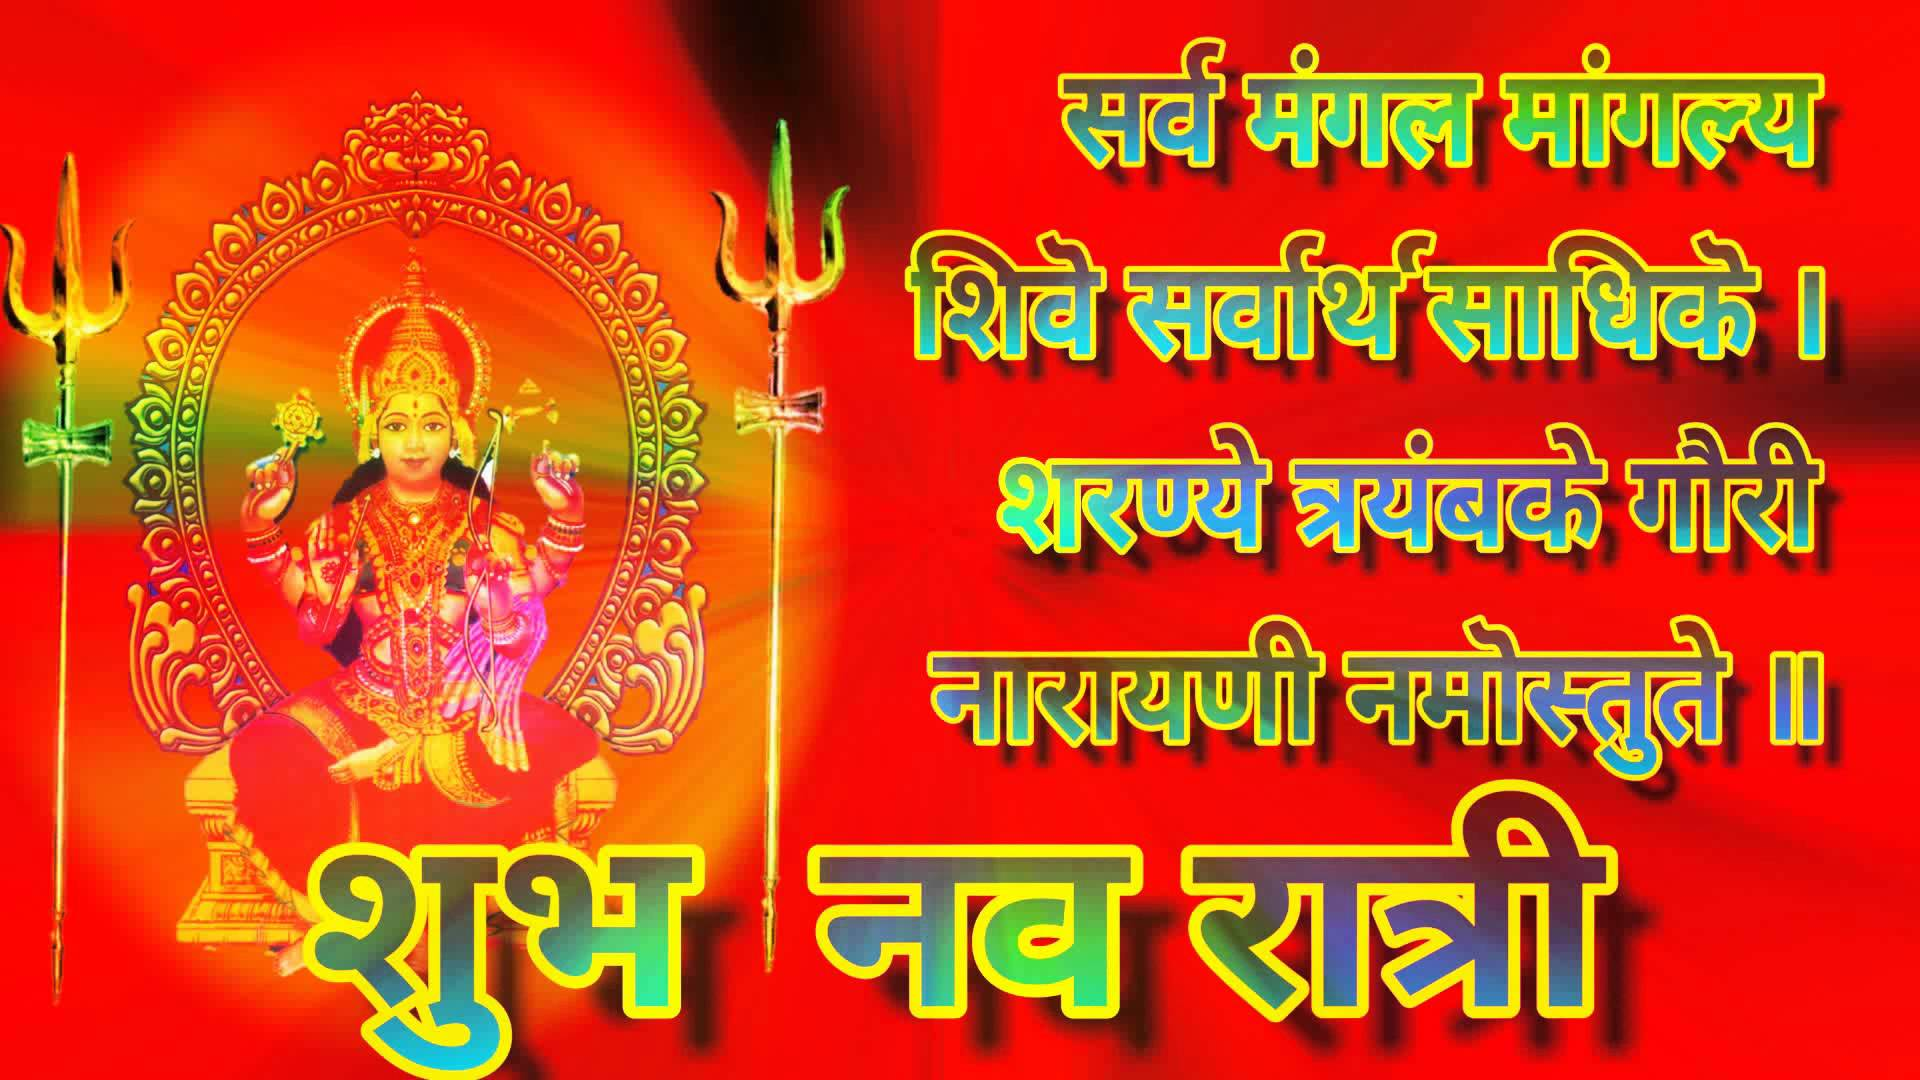 Happy Navratri Advance Wishes Greeting Cards, Ecards, Images & Pictures in Hindi